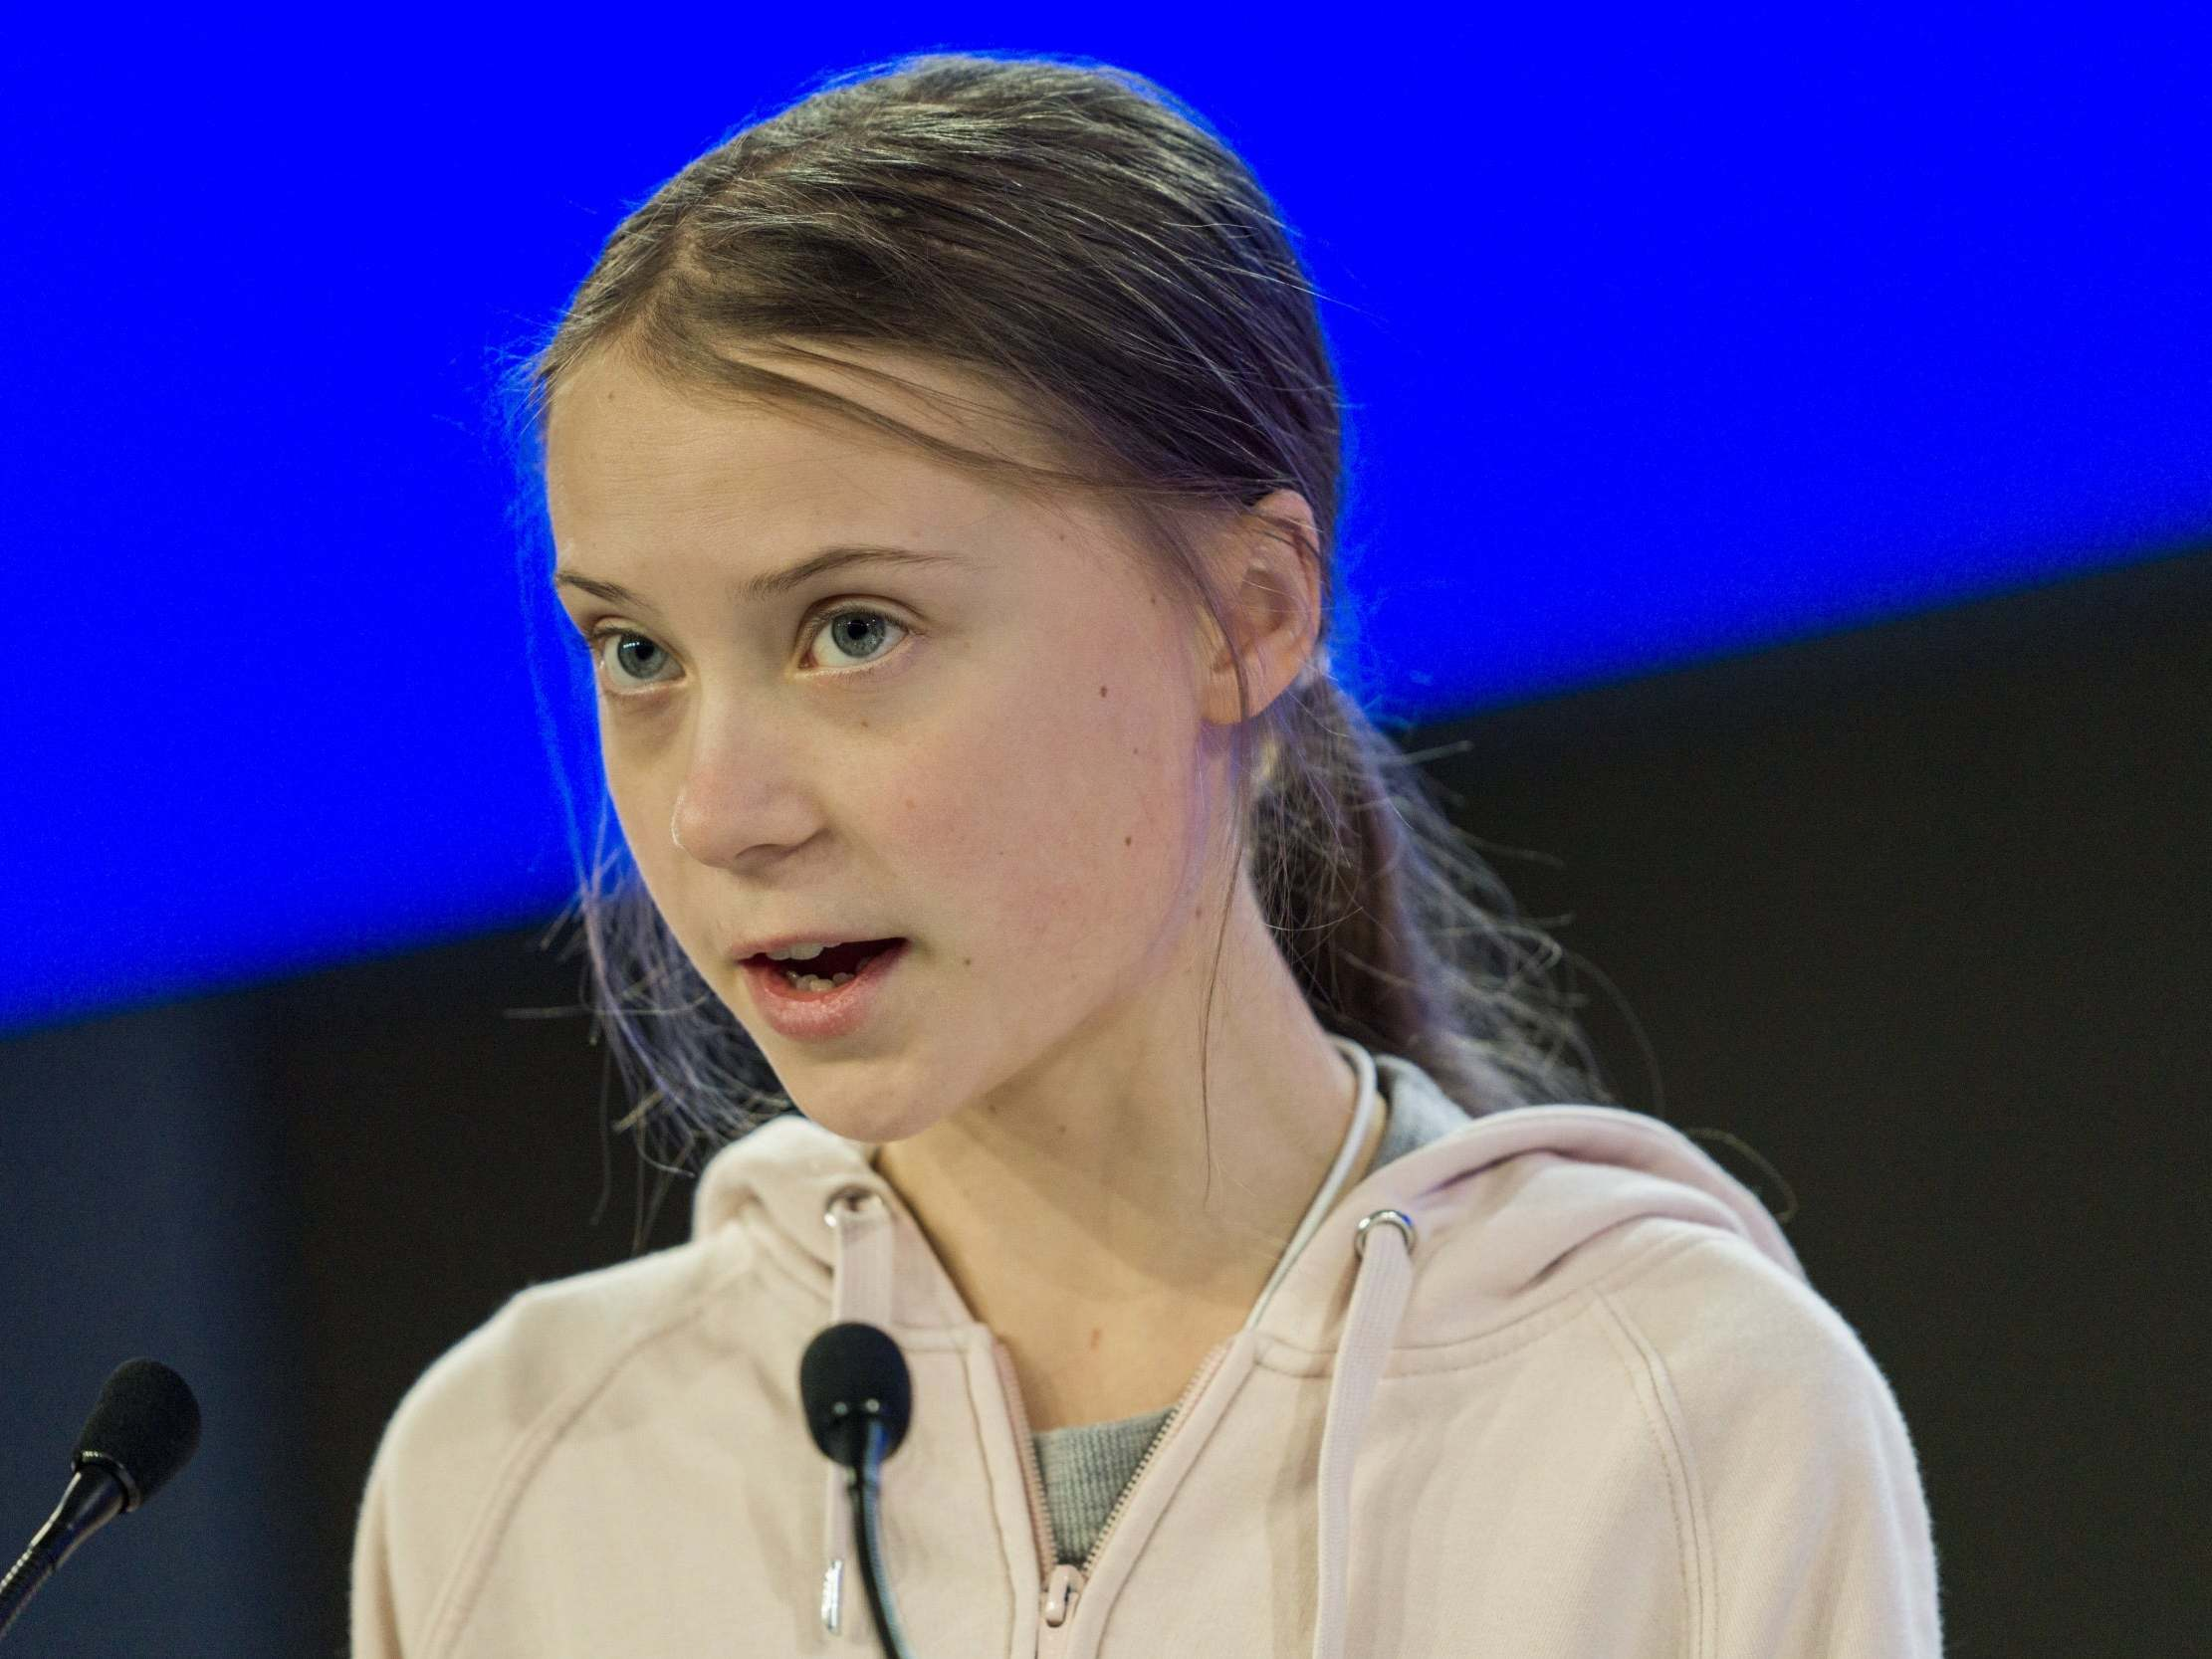 Trump's treasury secretary tells Greta Thunberg to 'study economics' after call for fossil fuel divestment